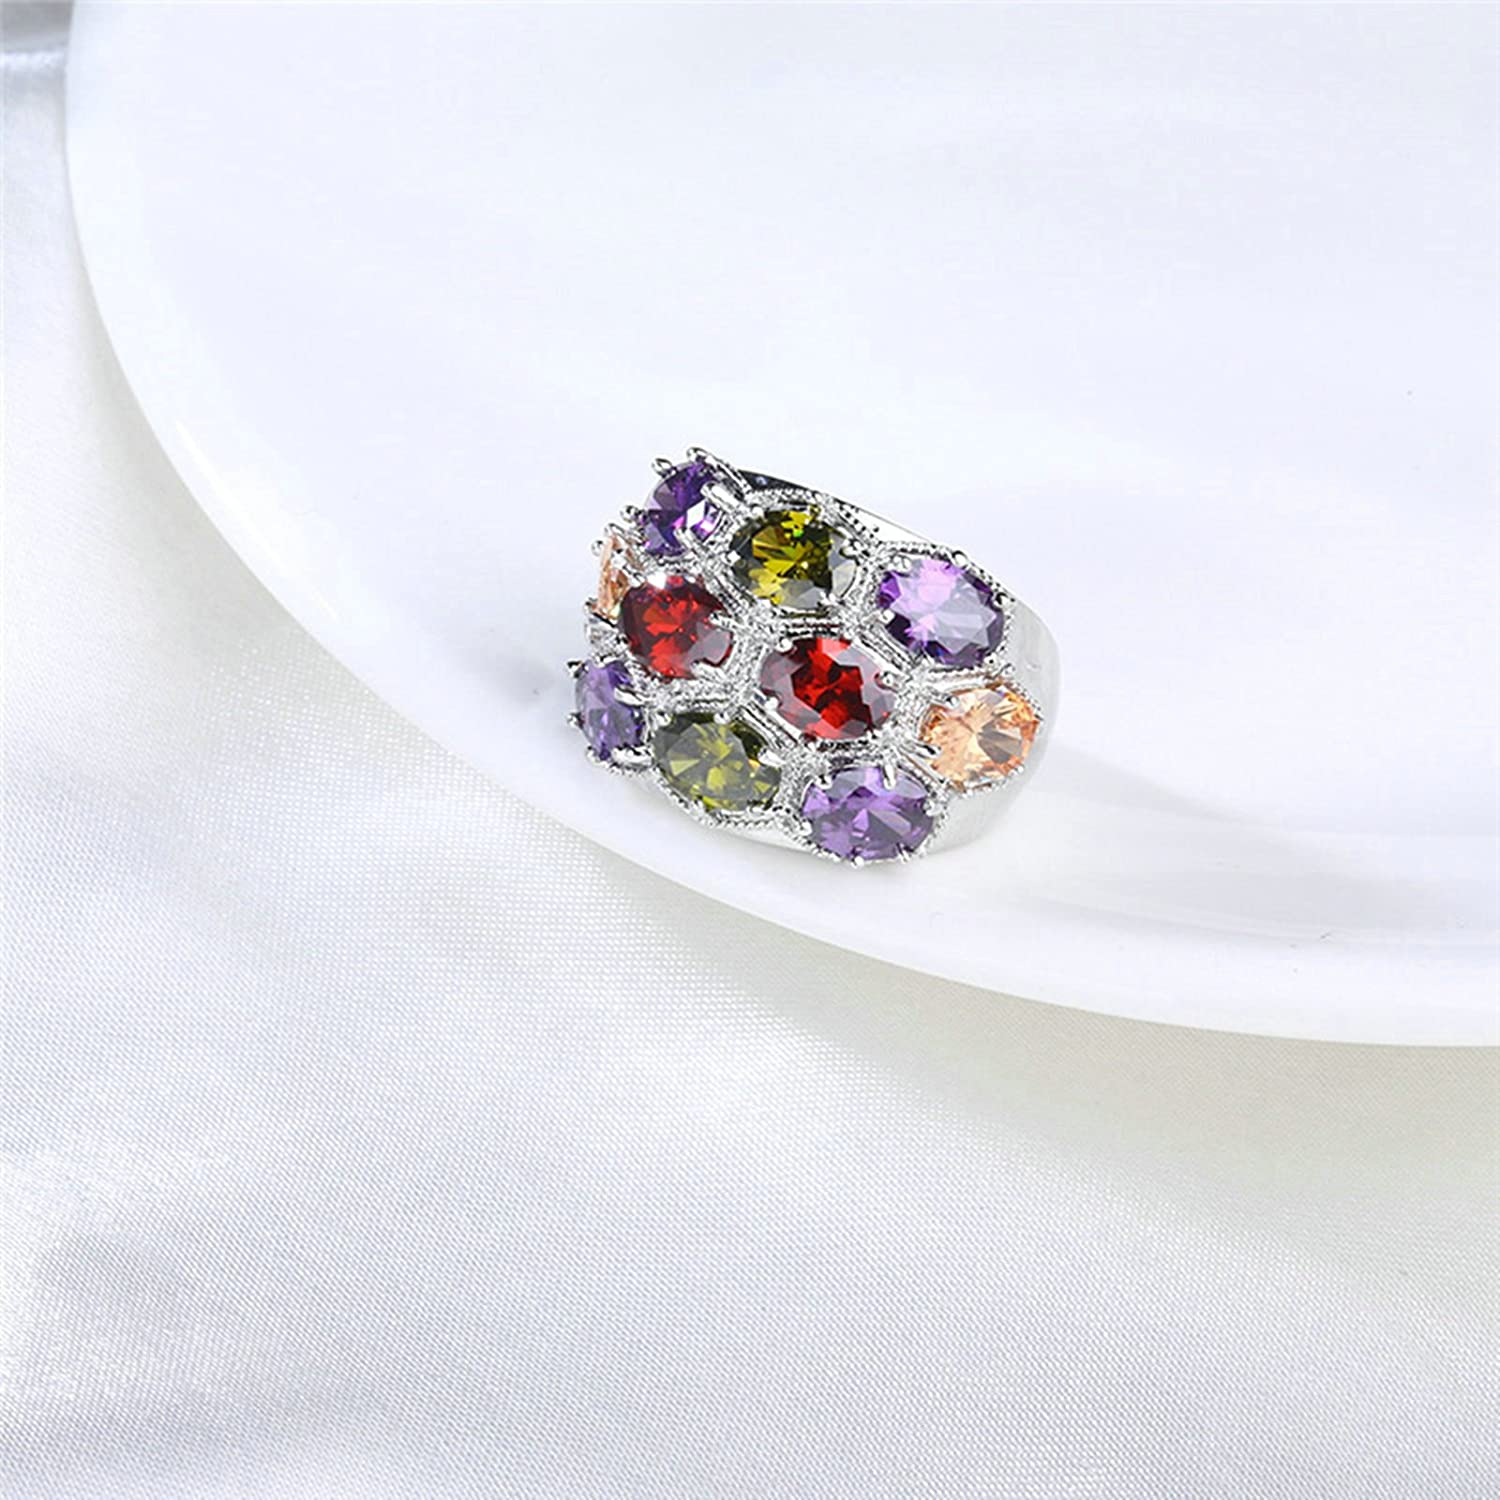 ANAZOZ Gold Plated Colorful Cubic Zirconia Wedding Ring Band Women